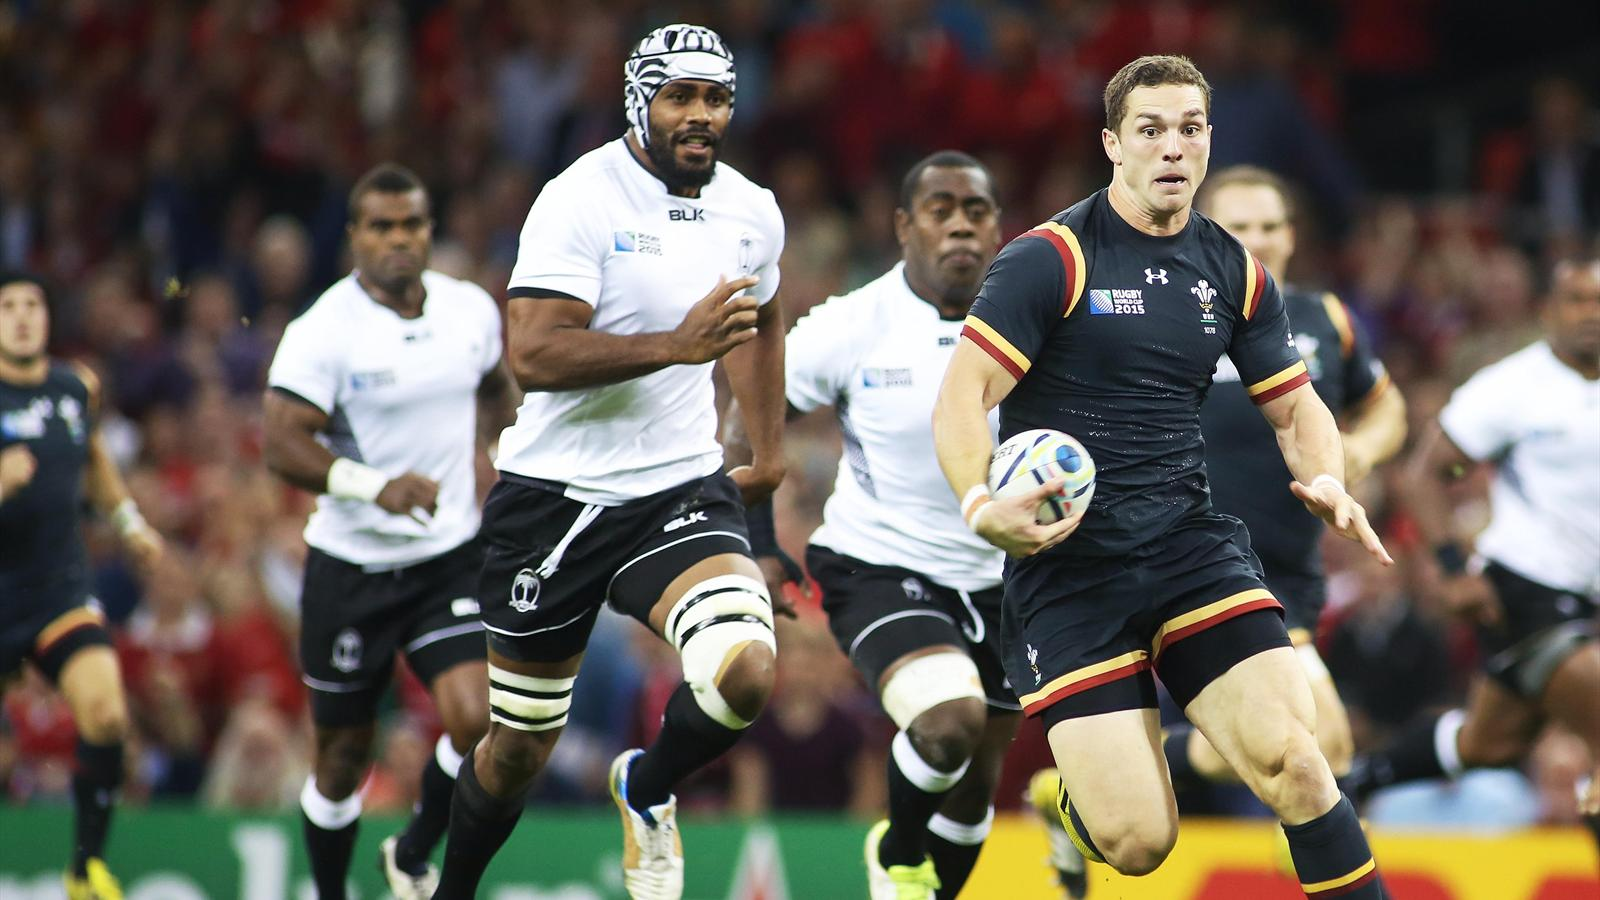 George North (pays de Galles) face aux Fidji - 1er octobre 2015